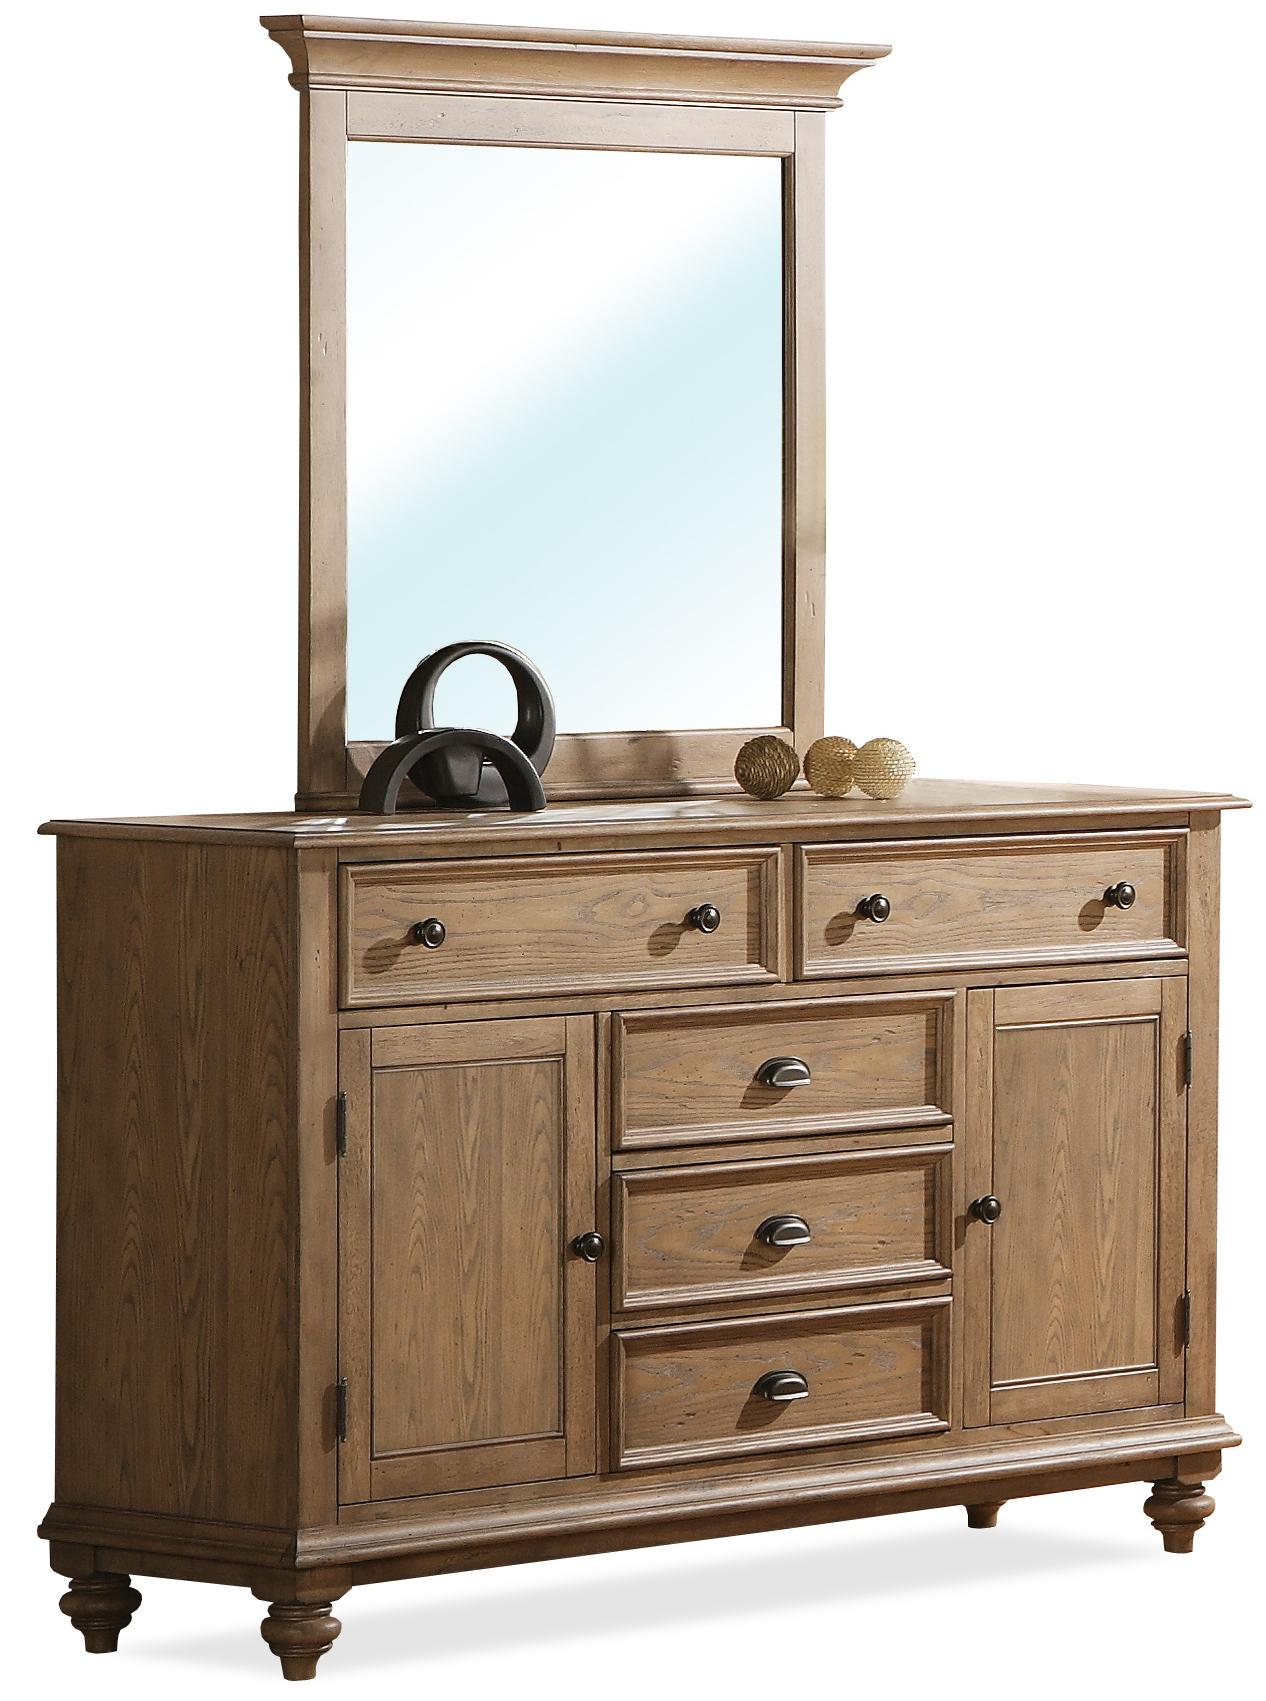 Riverside Furniture Coventry Dresser & Mirror - Item Number: 32462+61